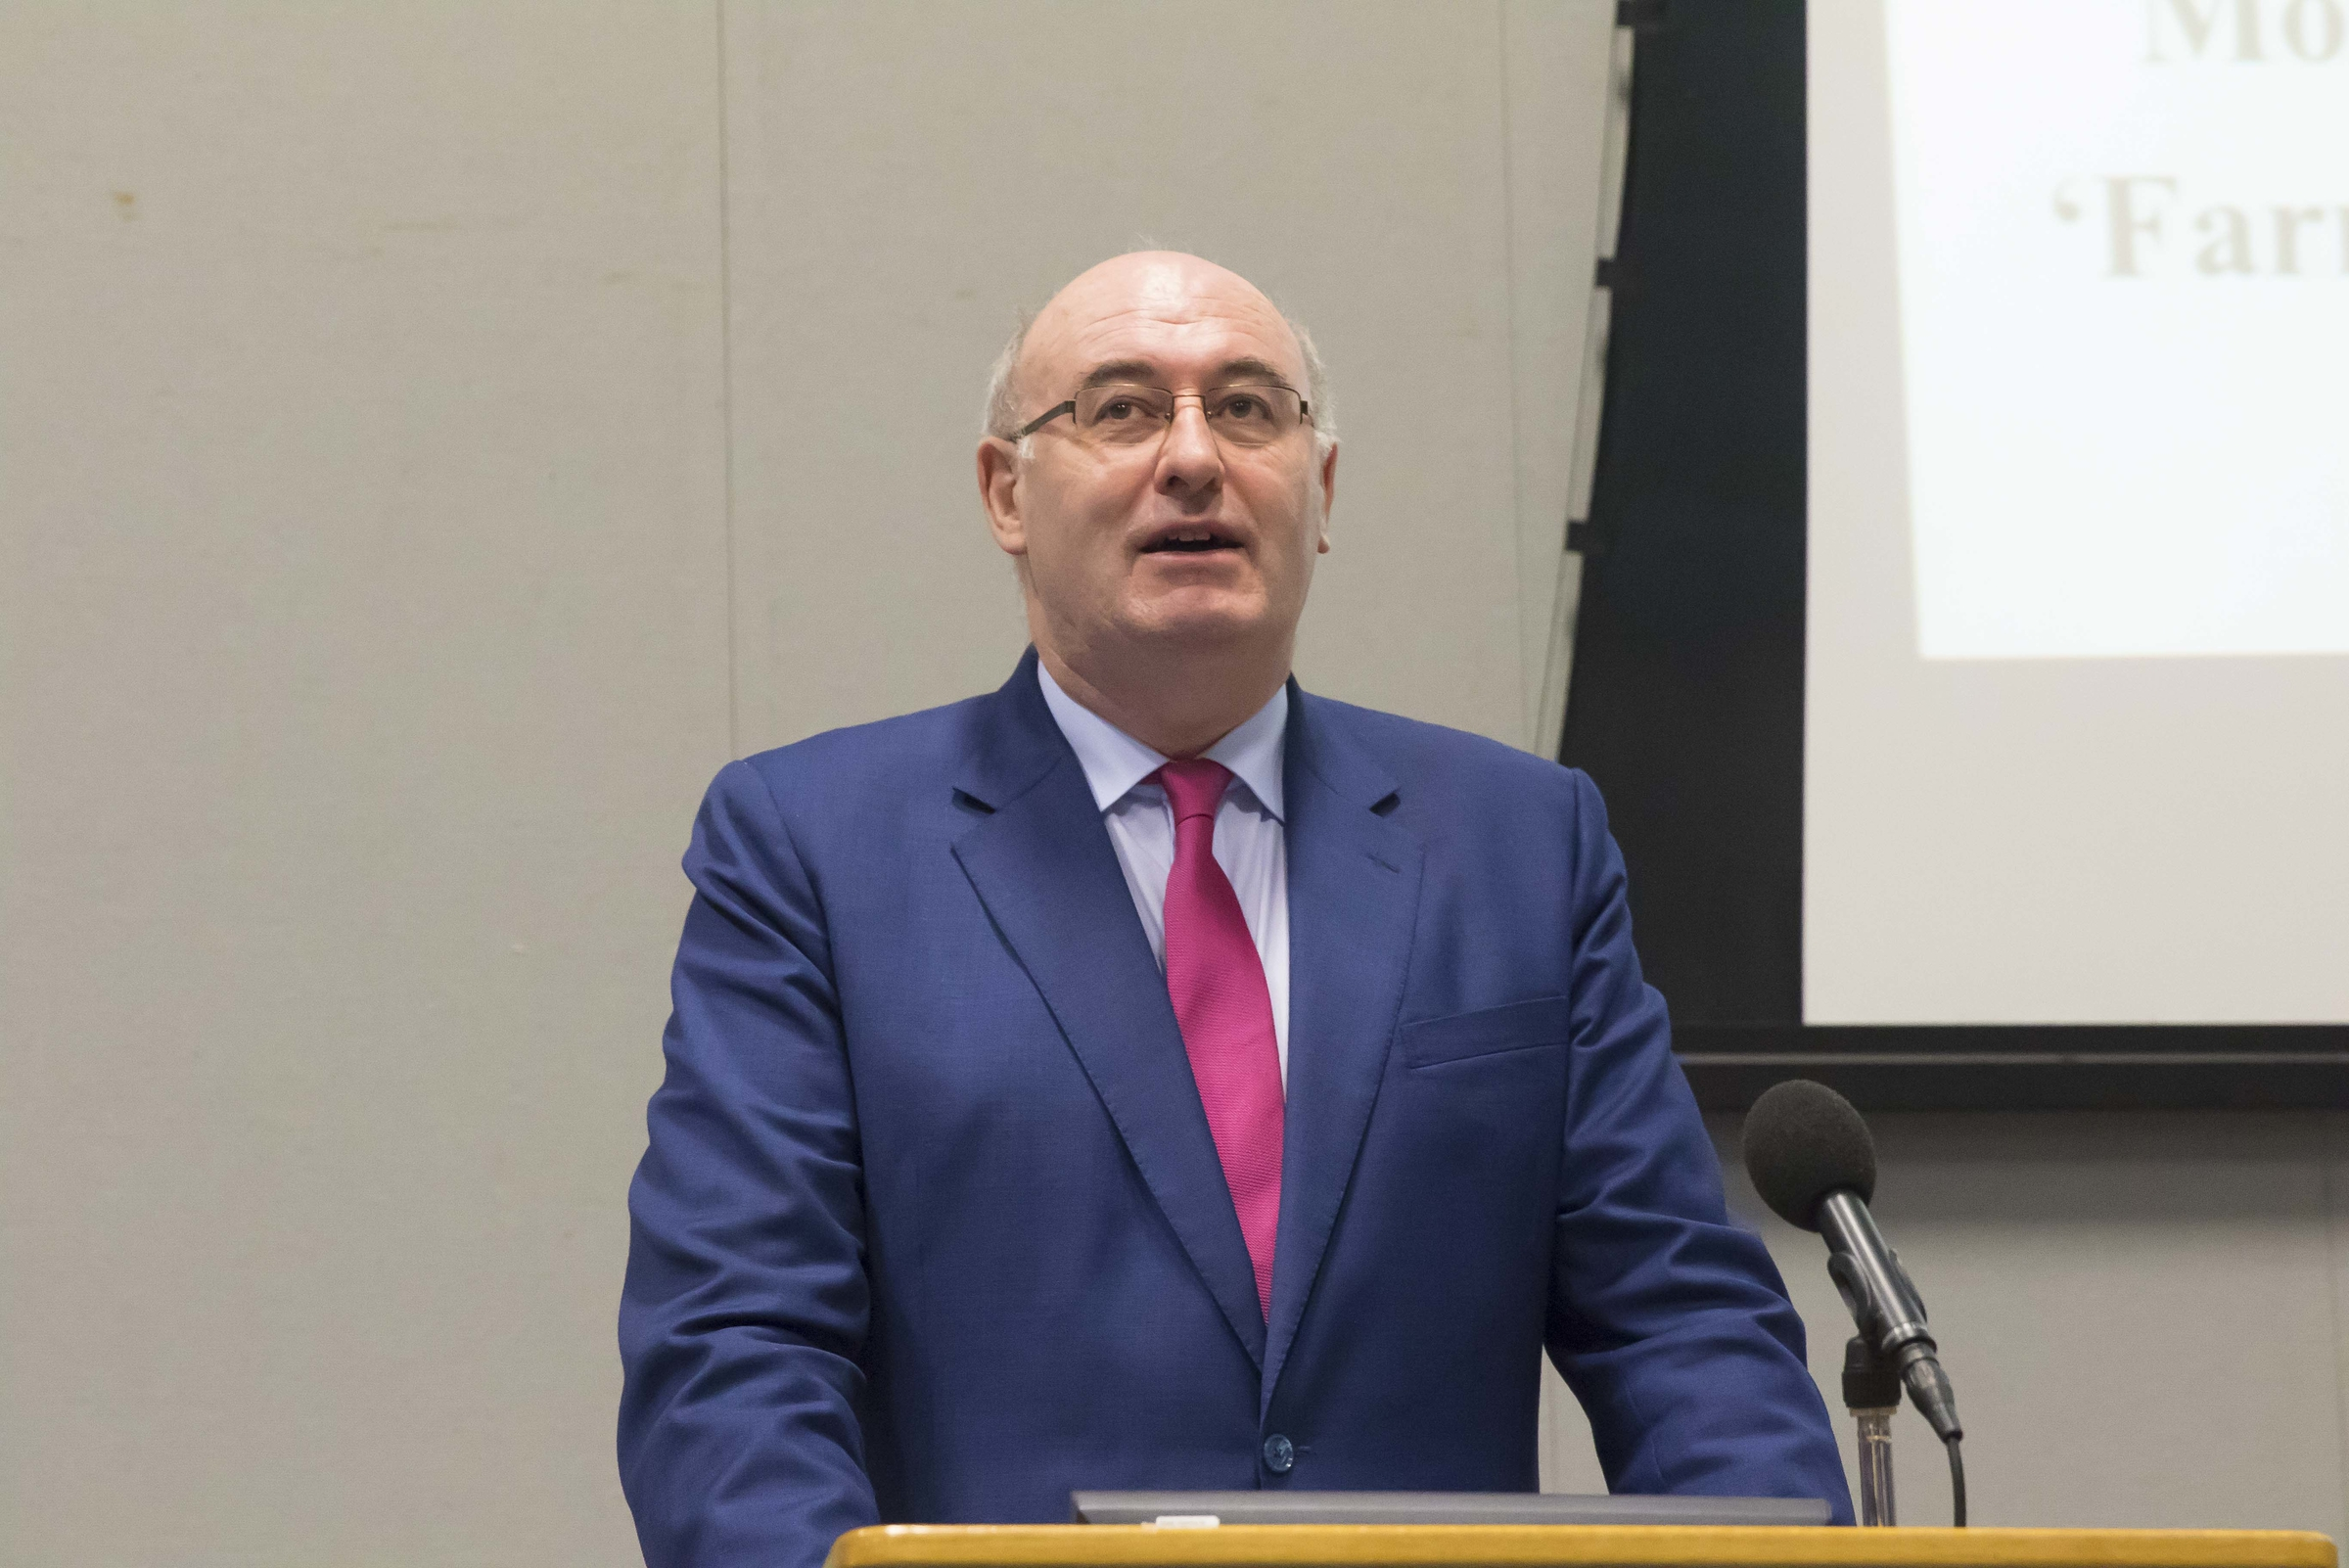 Pictured is EU Commissioner Phil Hogan addressing students from the School of Business in December 2015